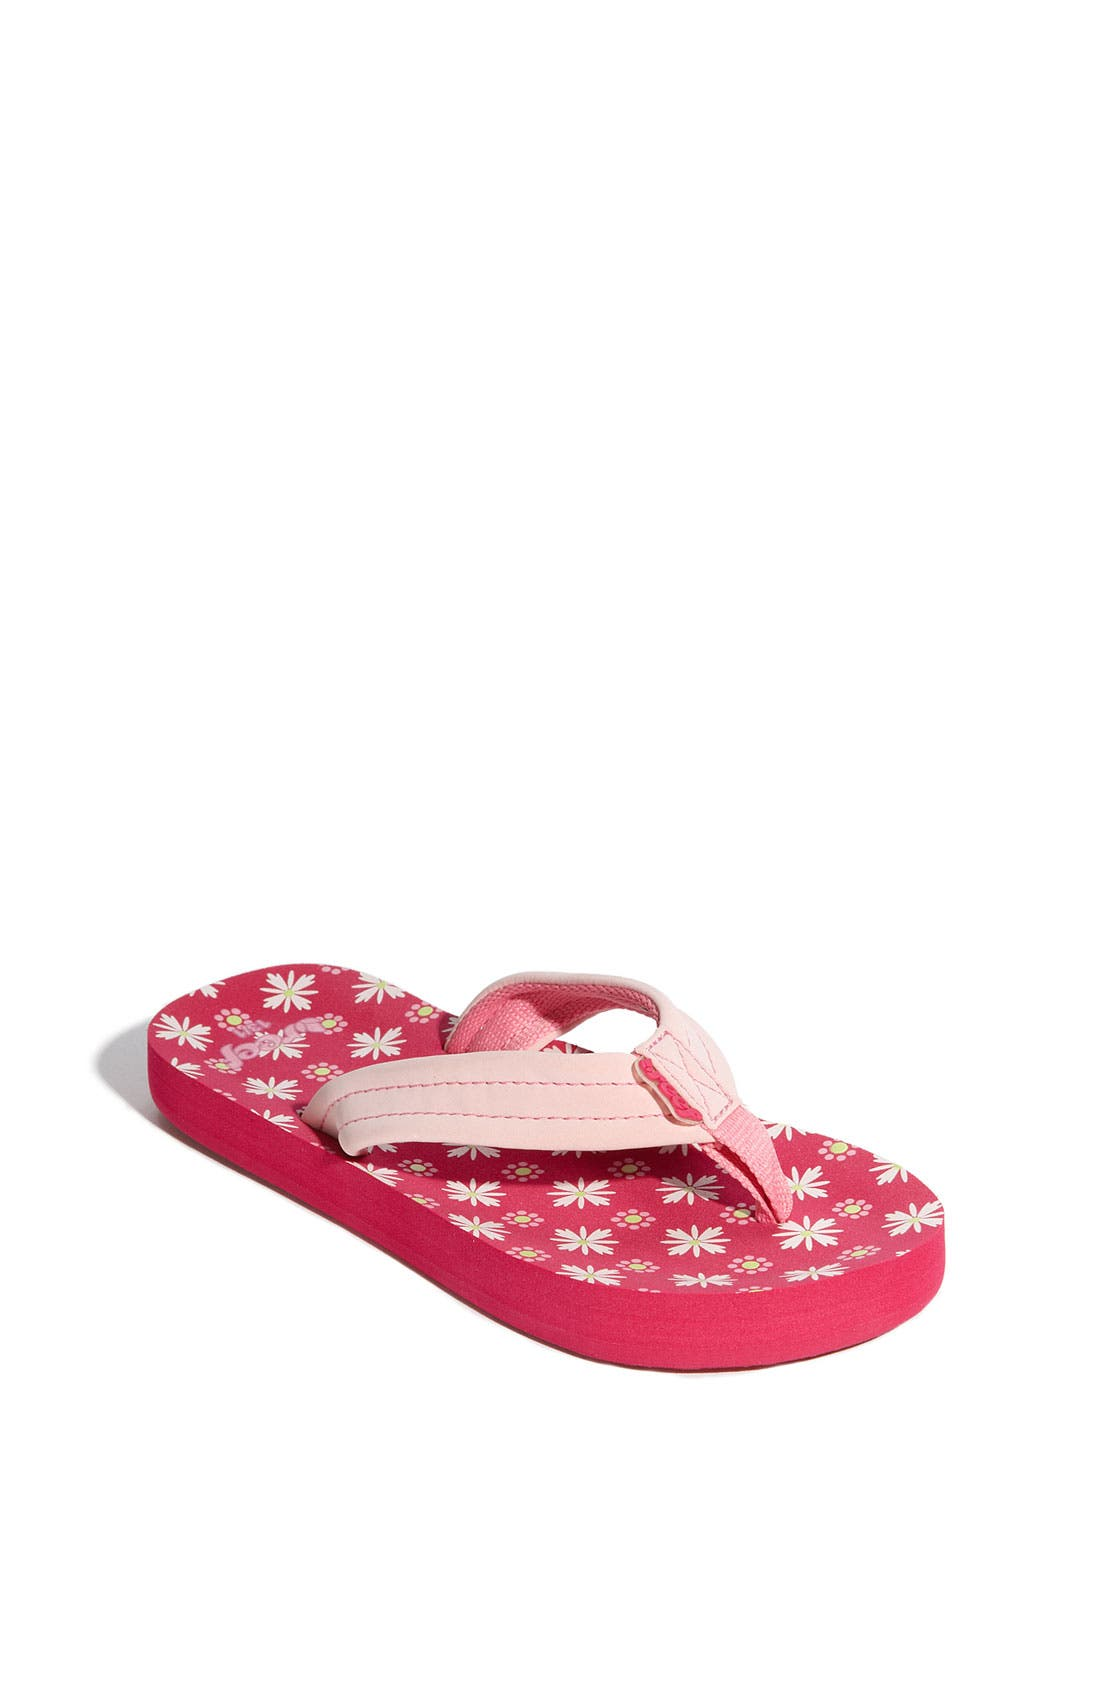 Alternate Image 1 Selected - Reef 'Little Ahi' Sandal (Walker, Toddler, Little Kid & Big Kid)